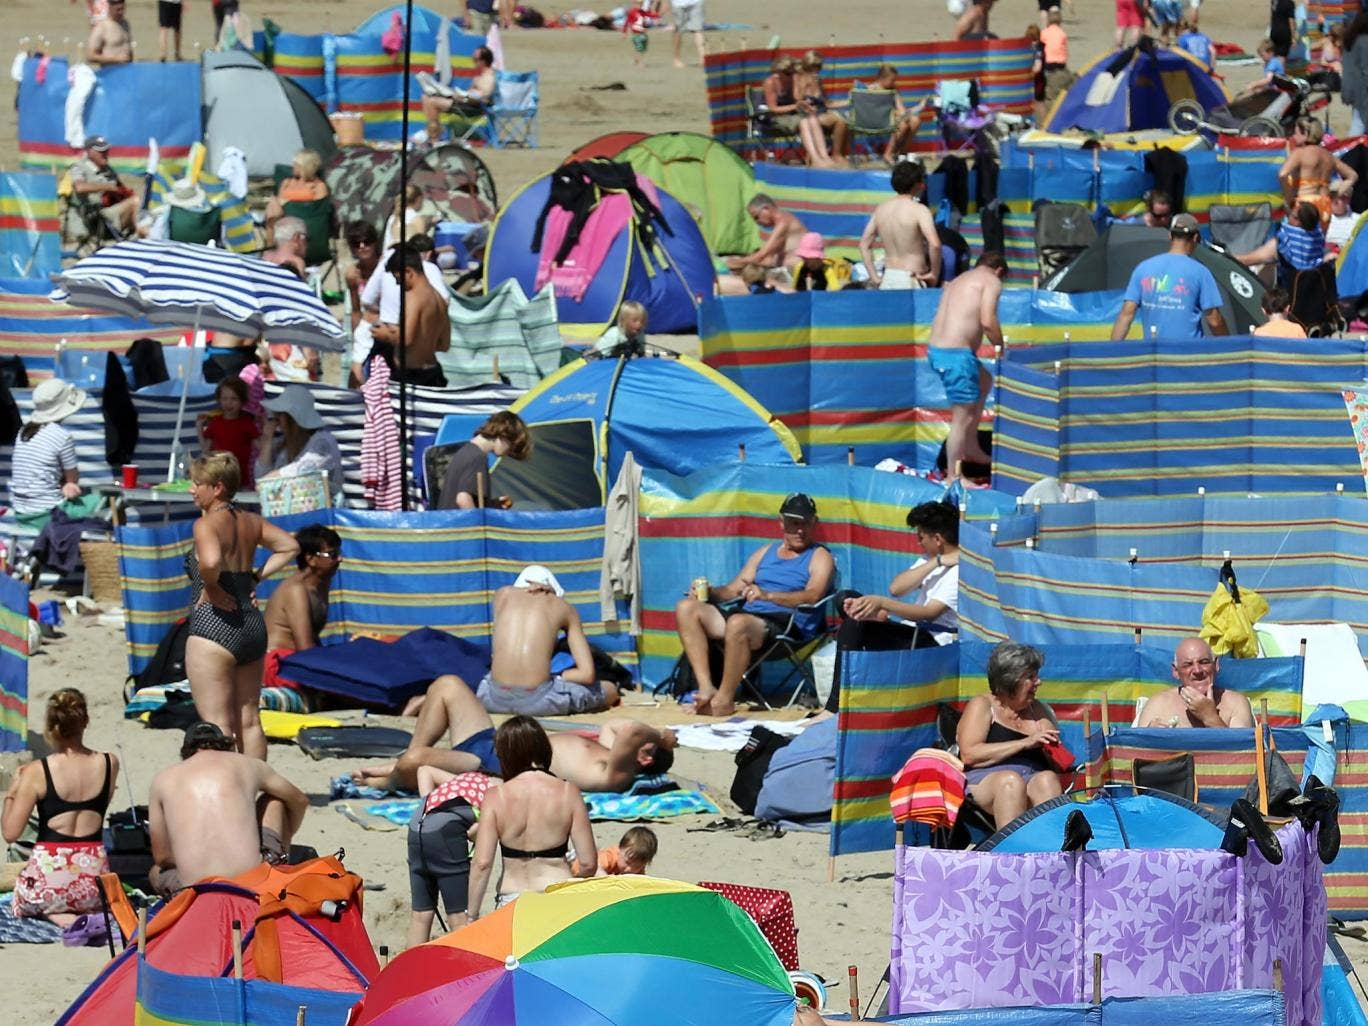 Cancer Research UK, which compiled the figures, said the huge increase was likely to be a consequence of British people having greater access to sunny climes since the cost of a holiday abroad dropped significantly in the 1960s.